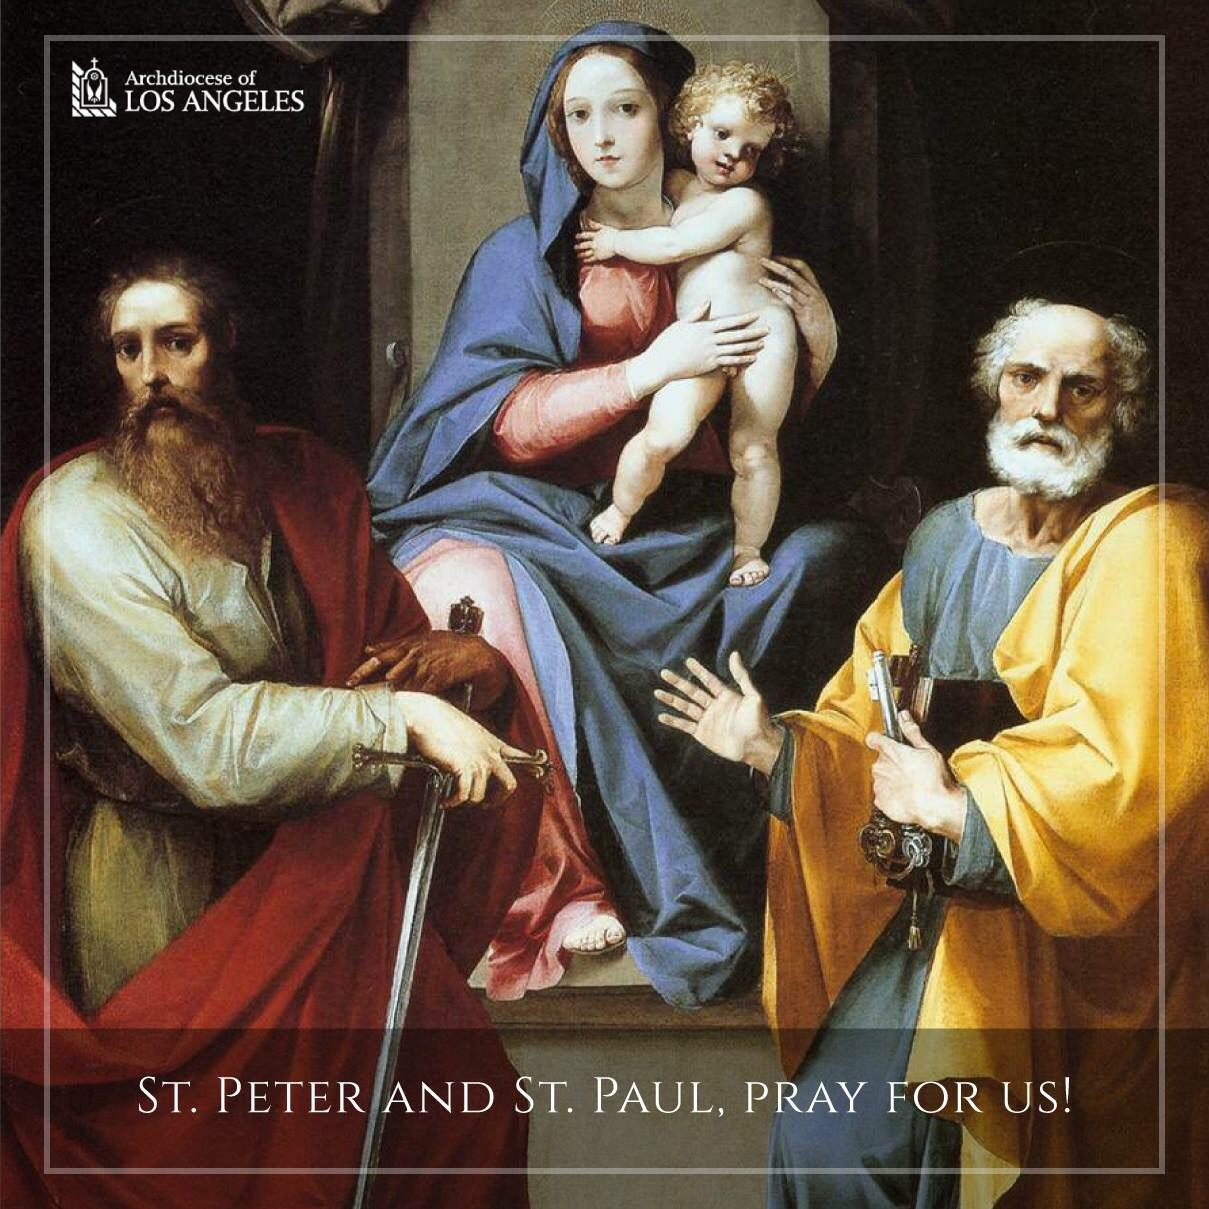 St. Peter and St. Paul, pray for us!